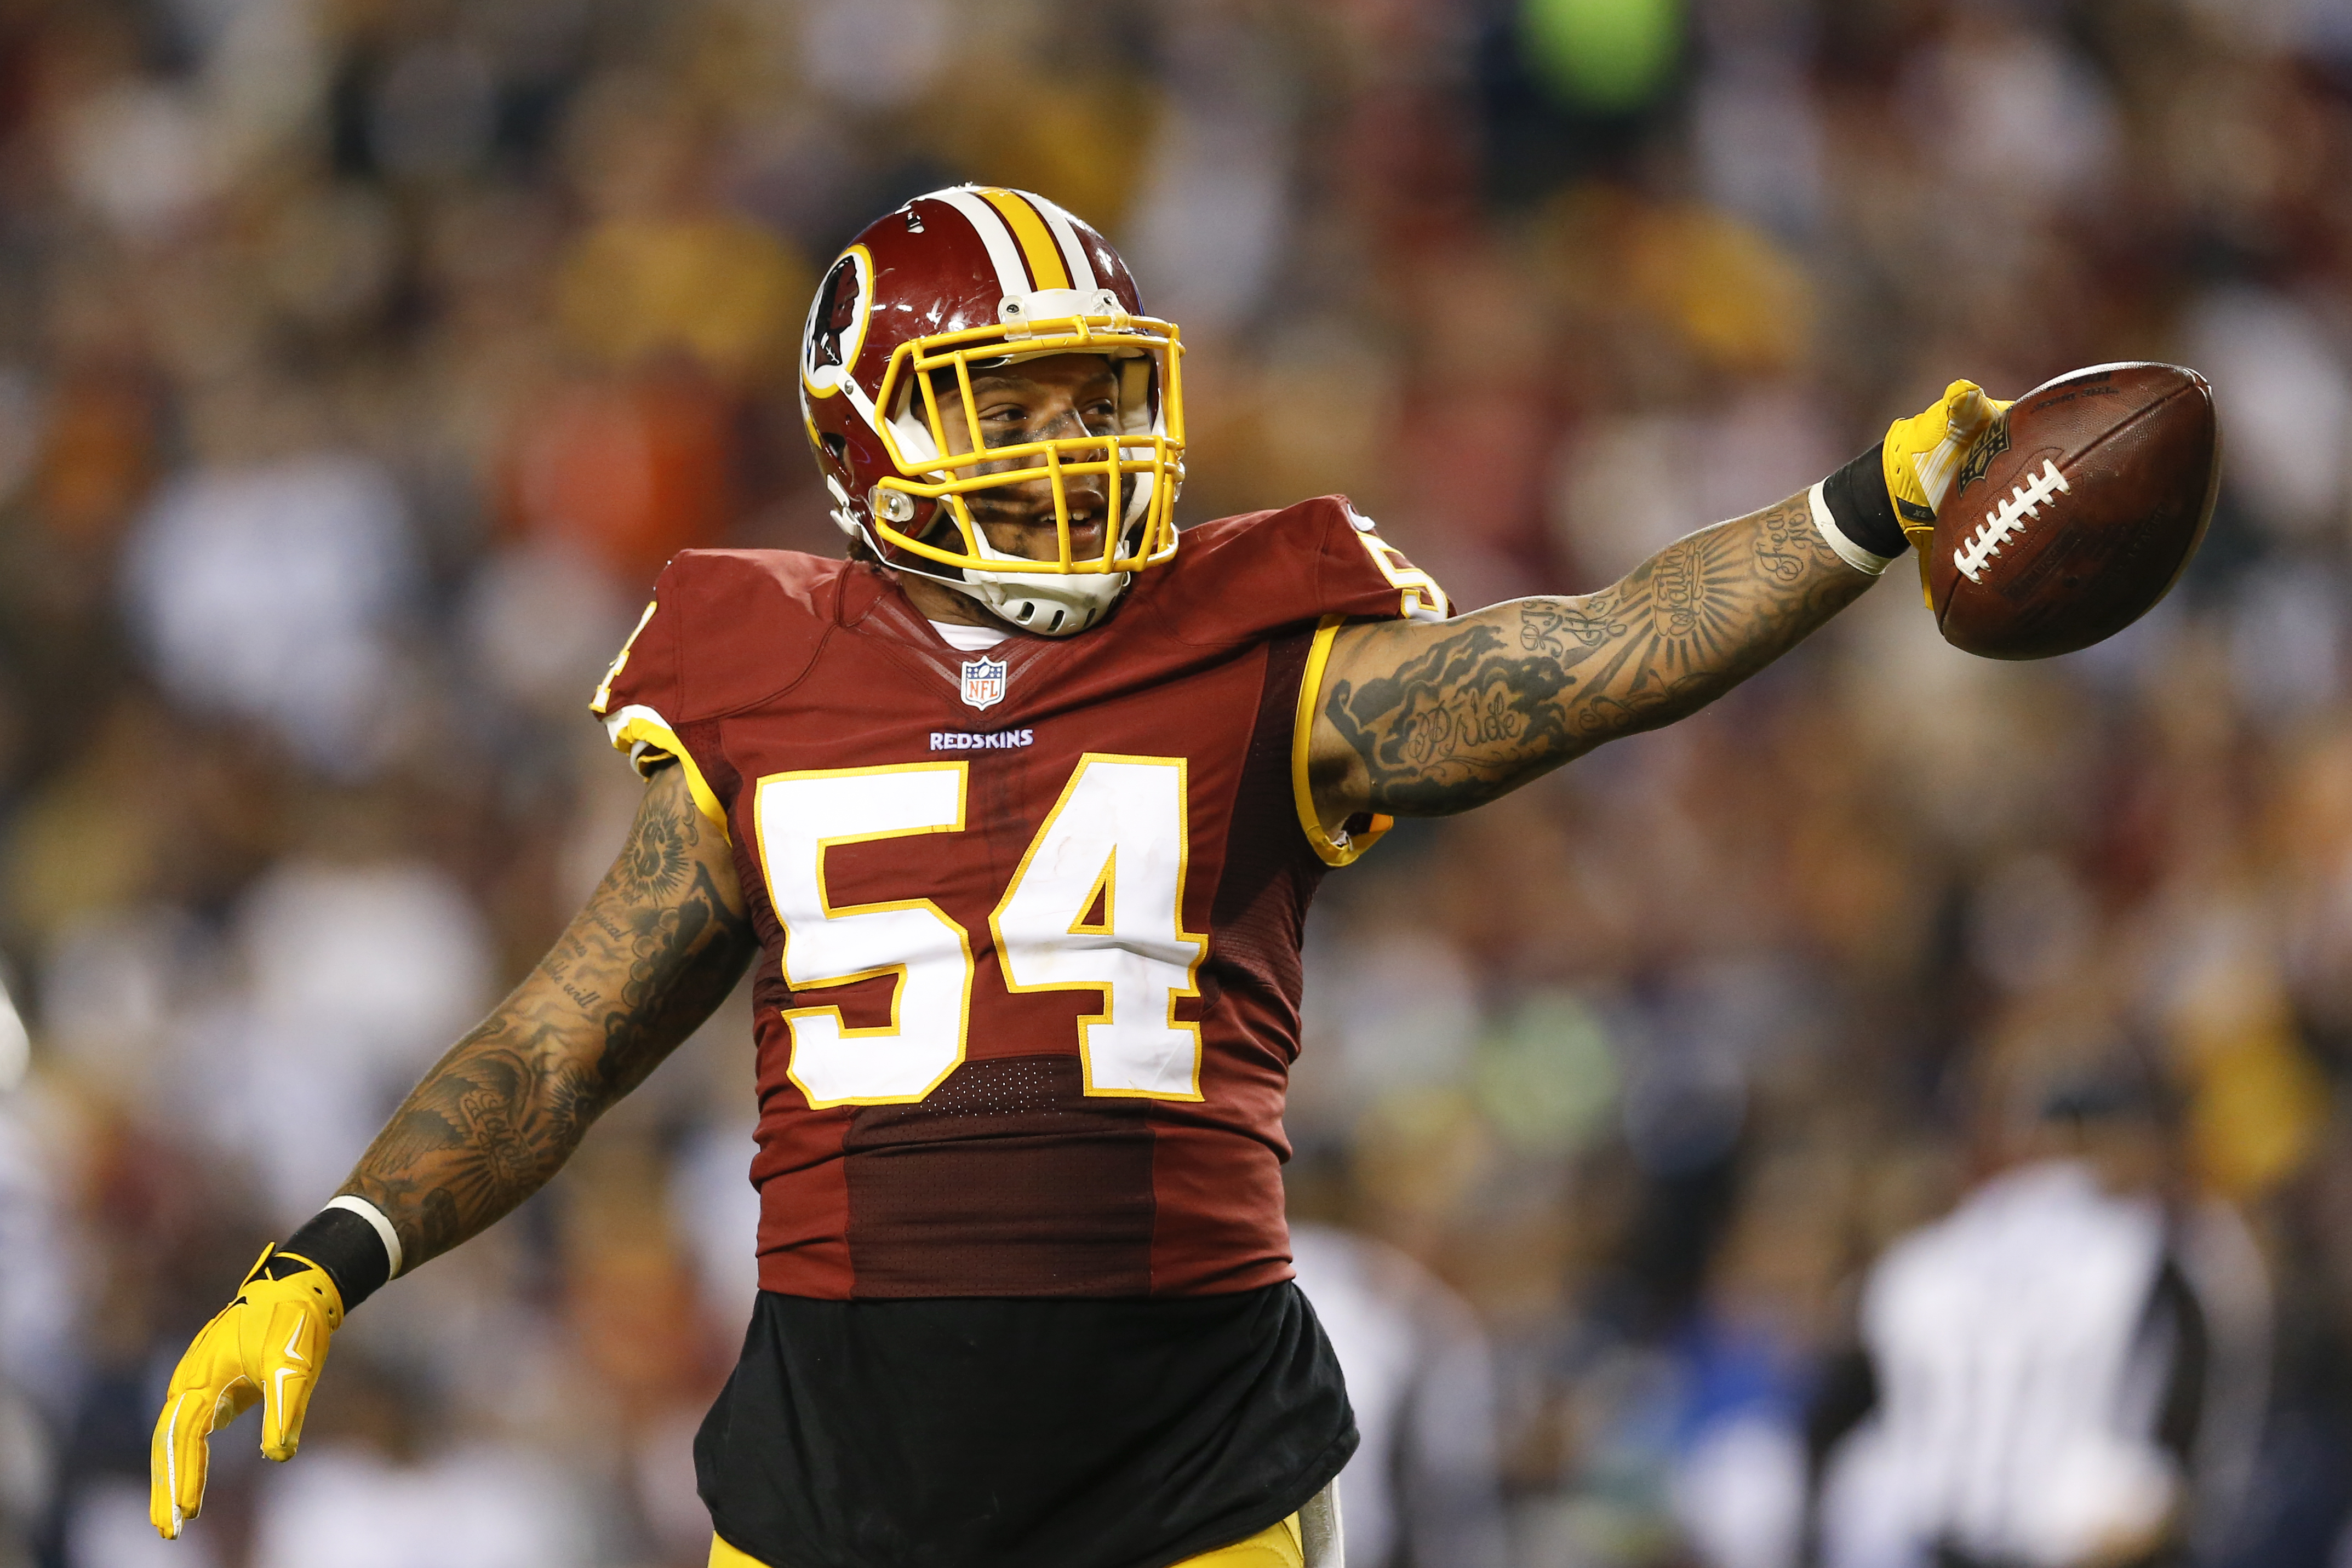 FILE - In this Dec. 7, 2015, file photo, Washington Redskins linebacker Mason Foster celebrates after a play during an NFL football game against the Dallas Cowboys in Landover, Md.  A veteran of more than 50 starts in his first four NFL seasons, linebacke